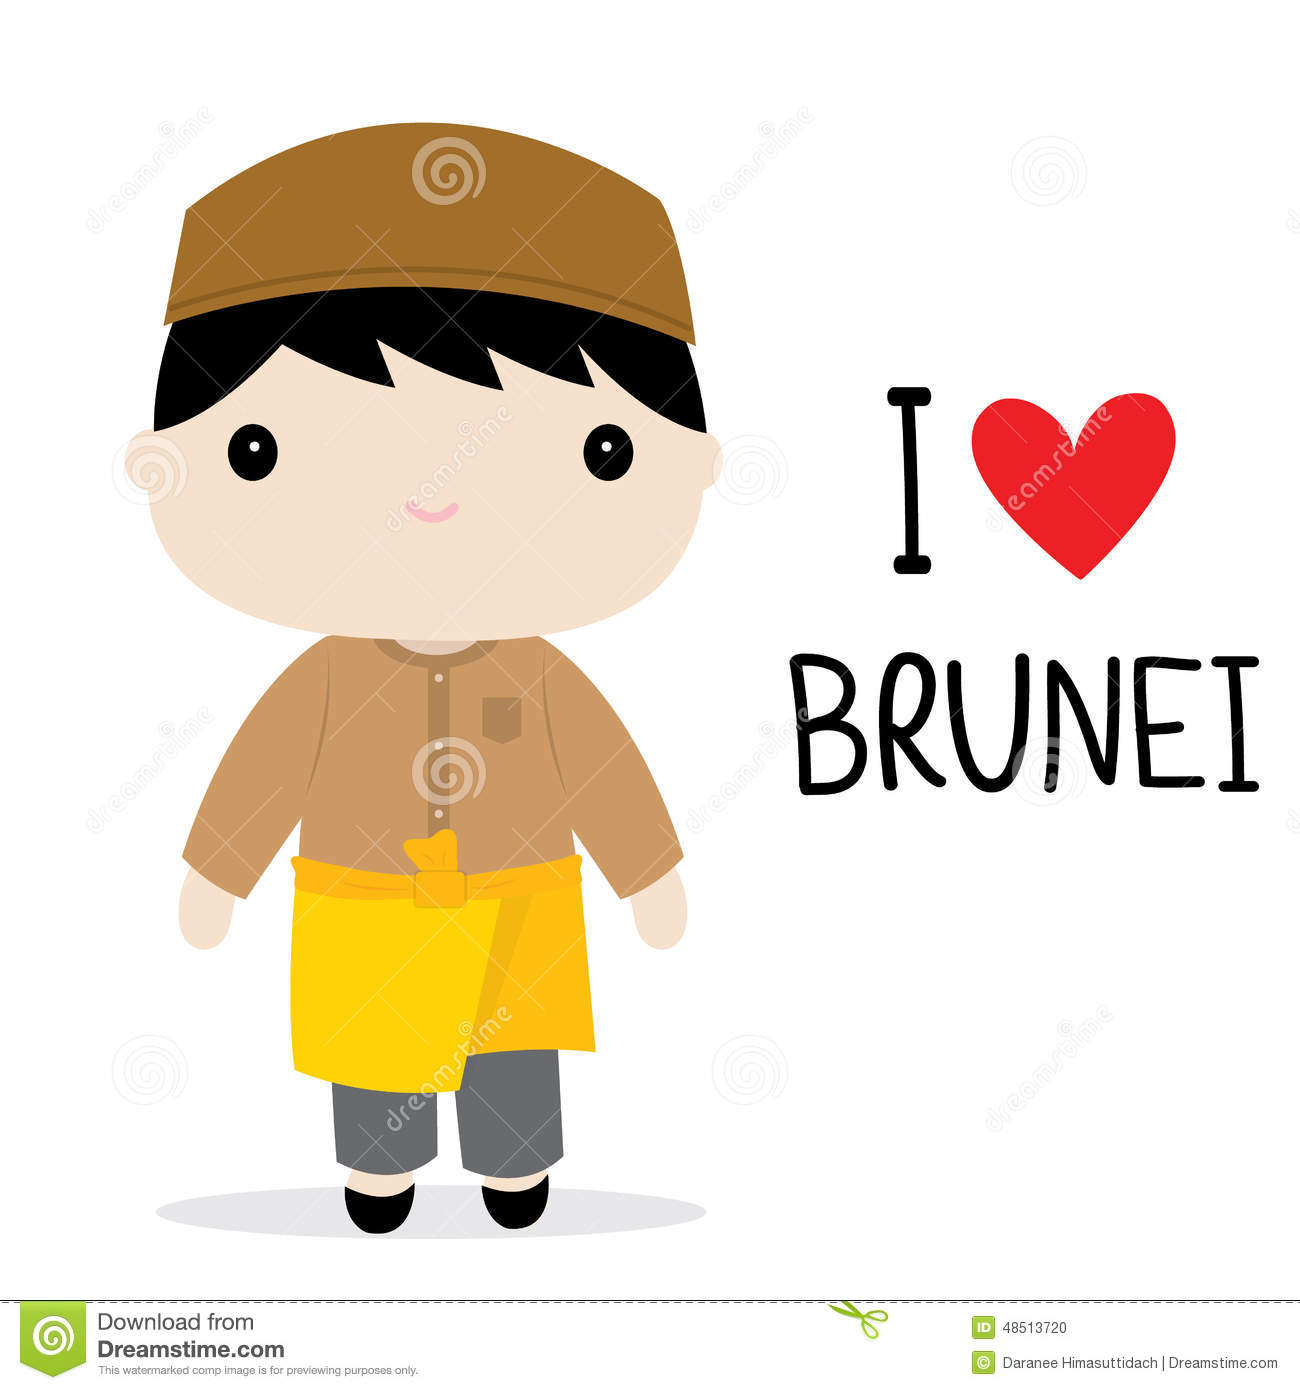 Brunei Men National Dress Cartoon Vector Stock Vector.